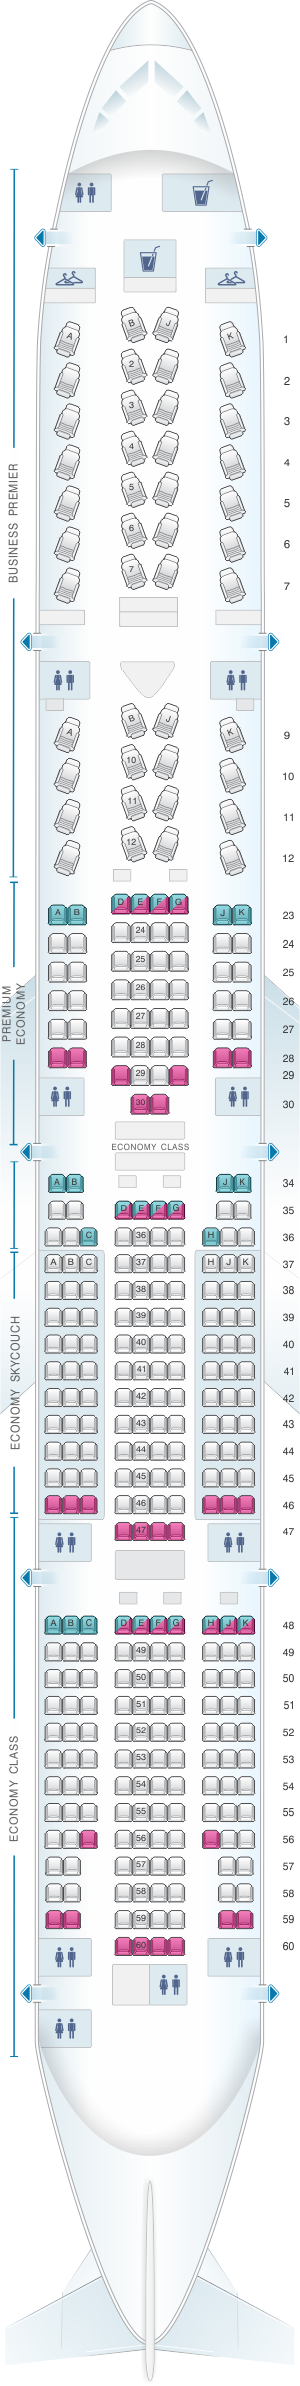 Seat map for Air New Zealand Boeing B777 300ER